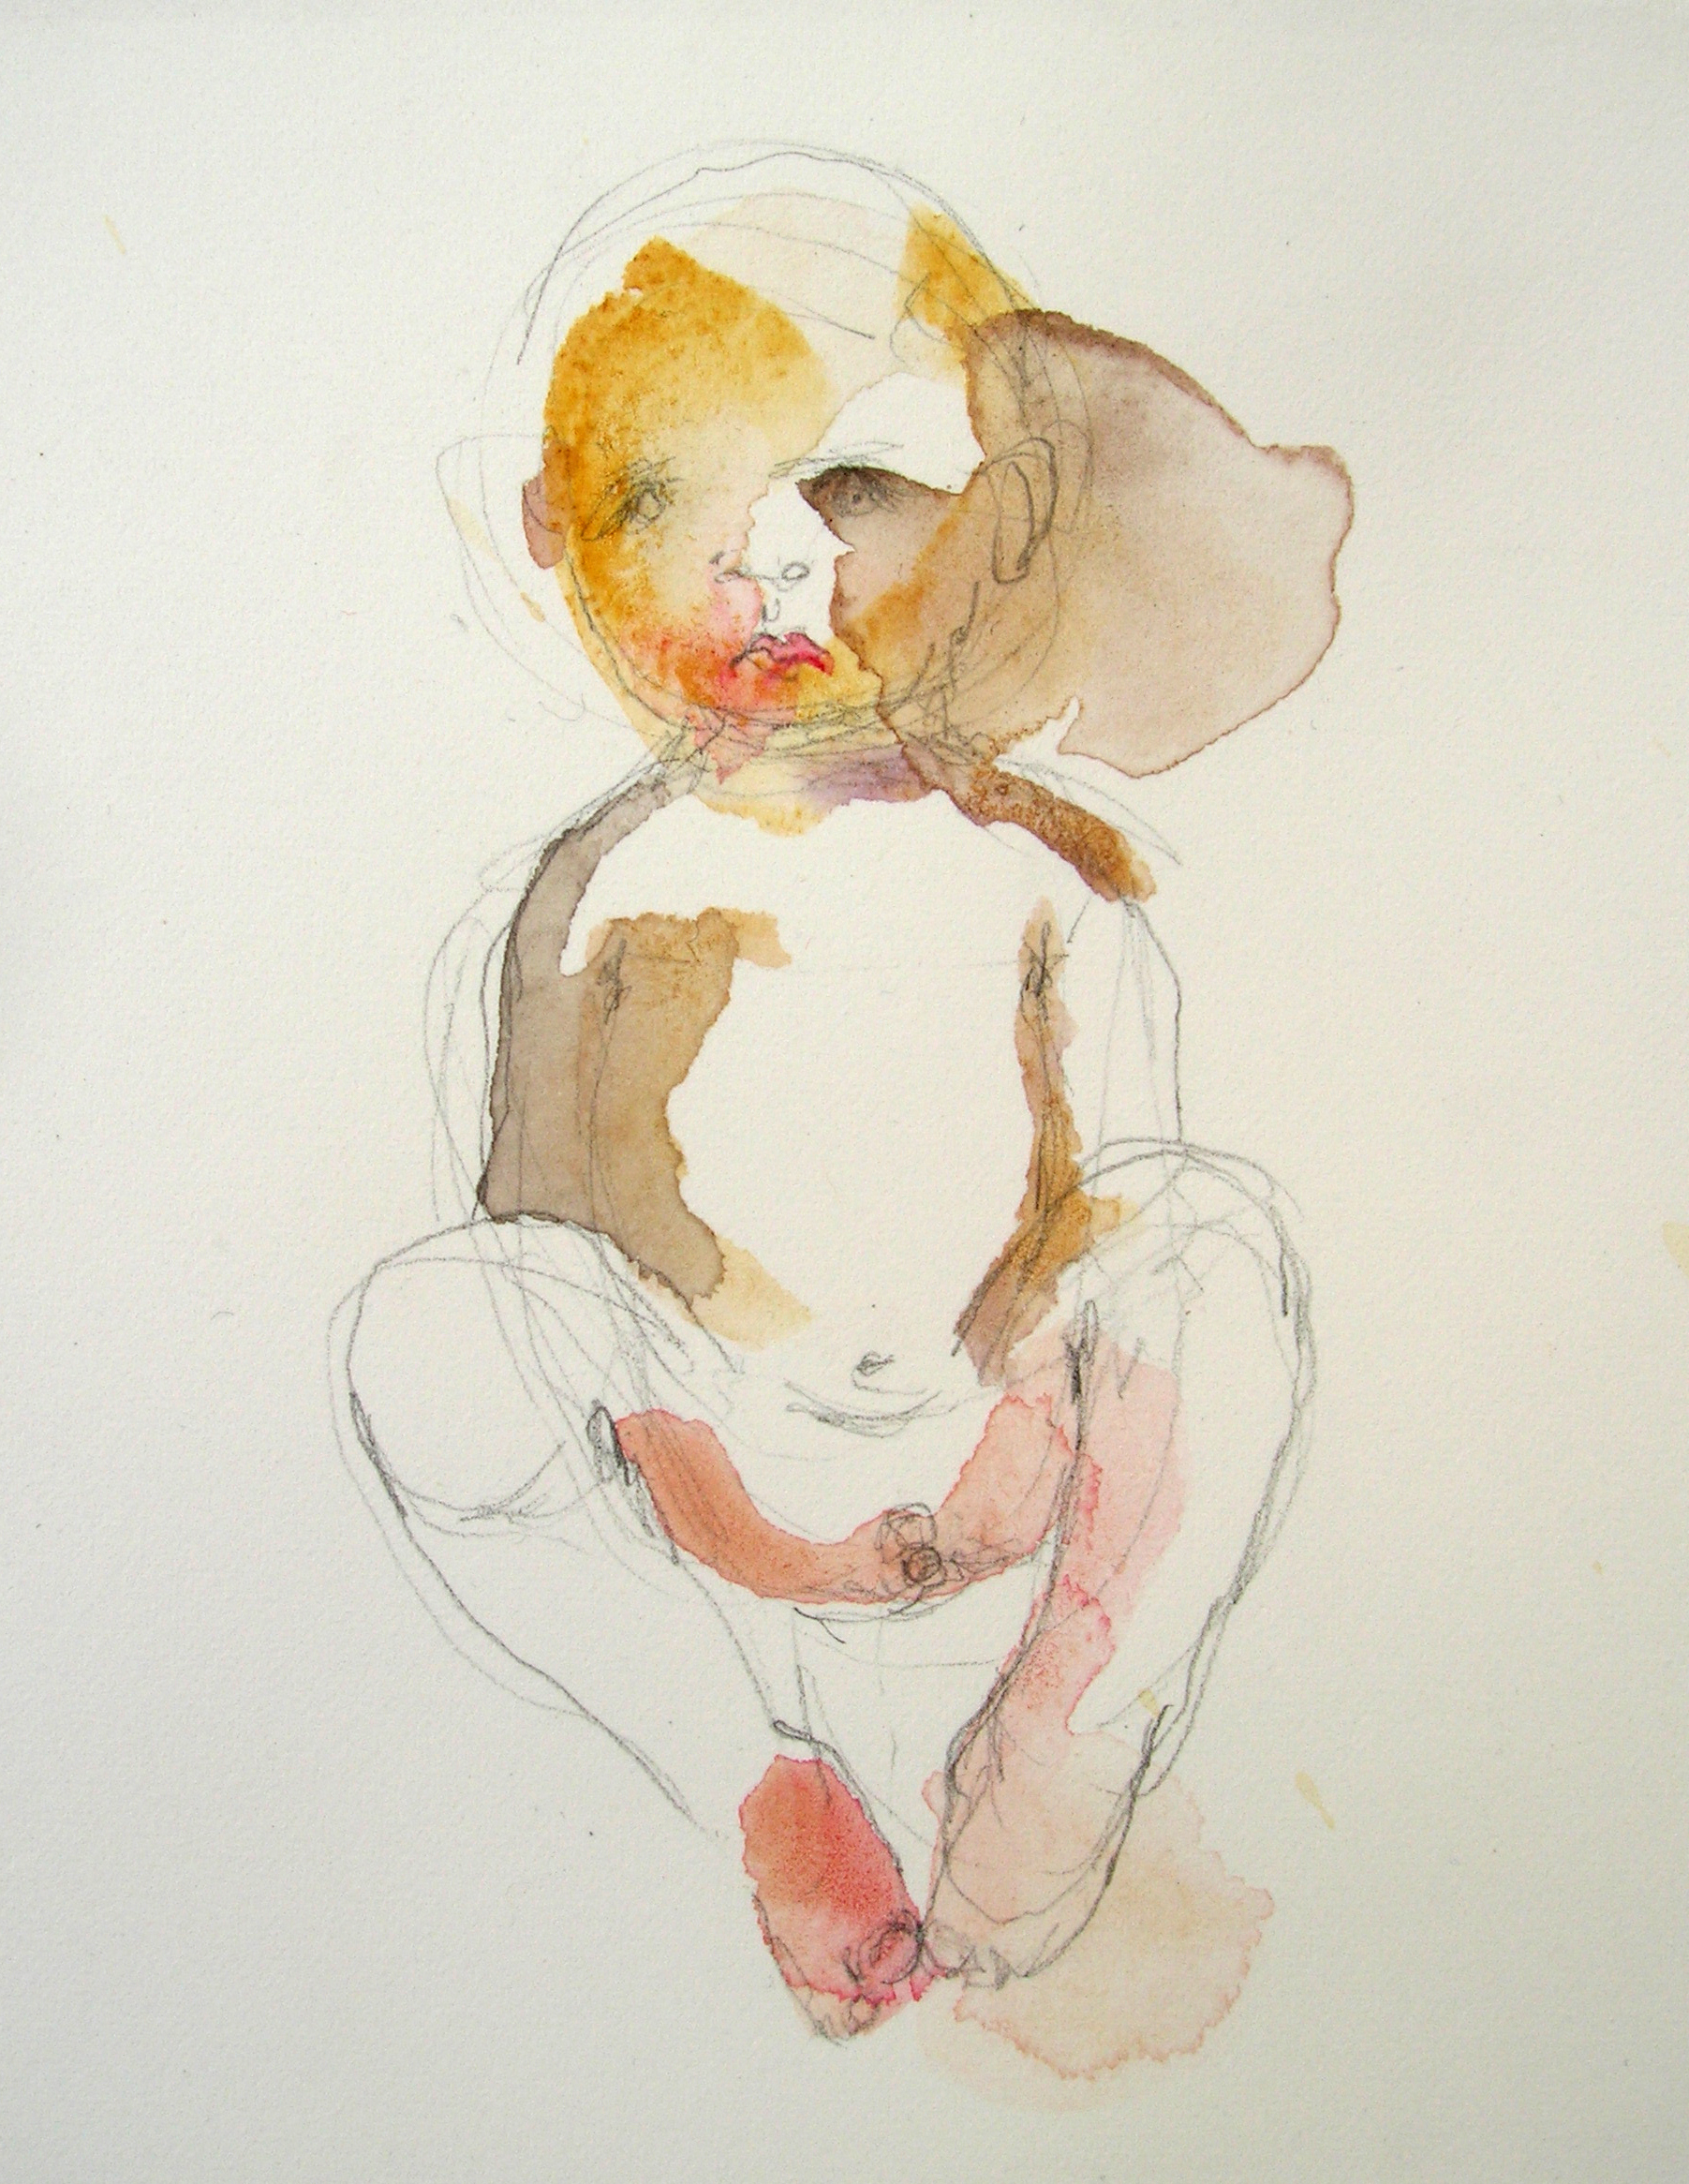 Sentado, 2007, Graphite and watercolor on paper, 3 X 3 in.